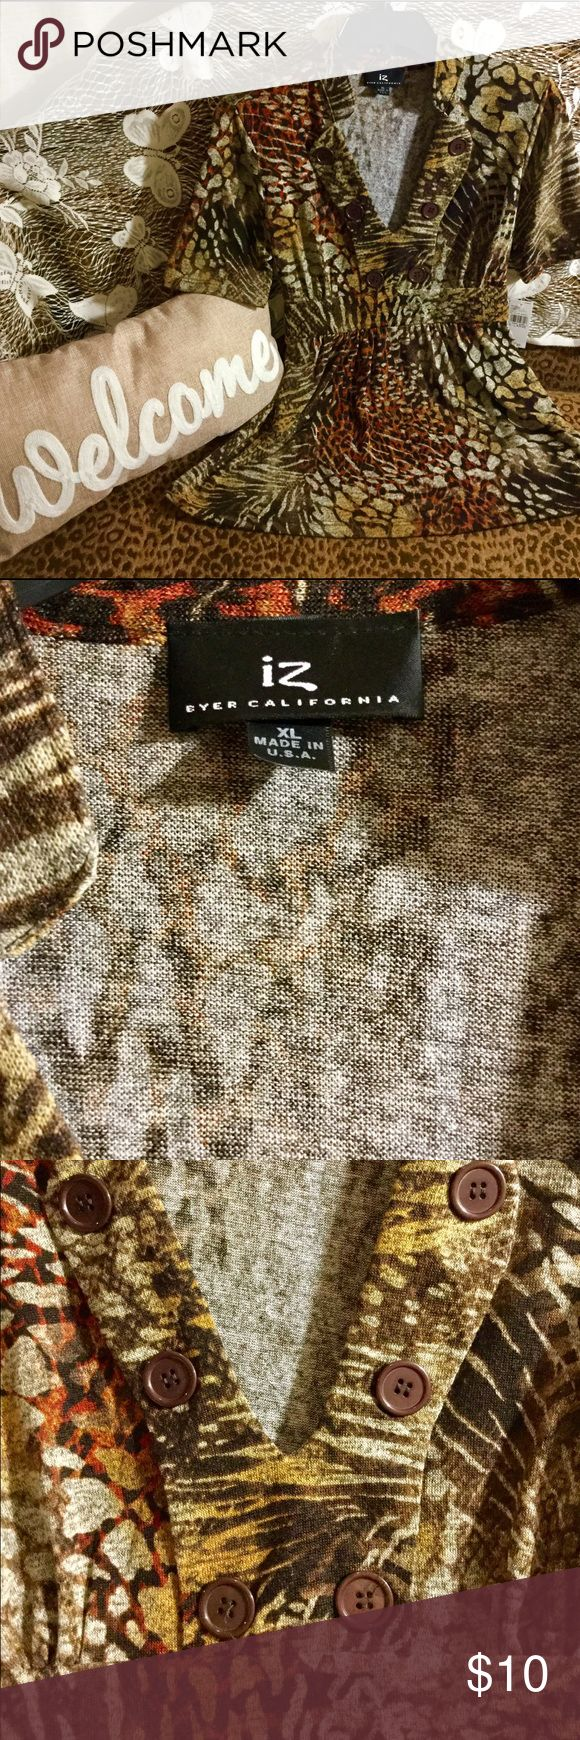 IZ Women's Top! IZ Women's Top! Beautiful short sleeve banded collar multi colored Safari print top. Adorable necklace with brown buttons on each side. Top ties in back to adjust for comfort. BNWT! Size XL IZ Tops